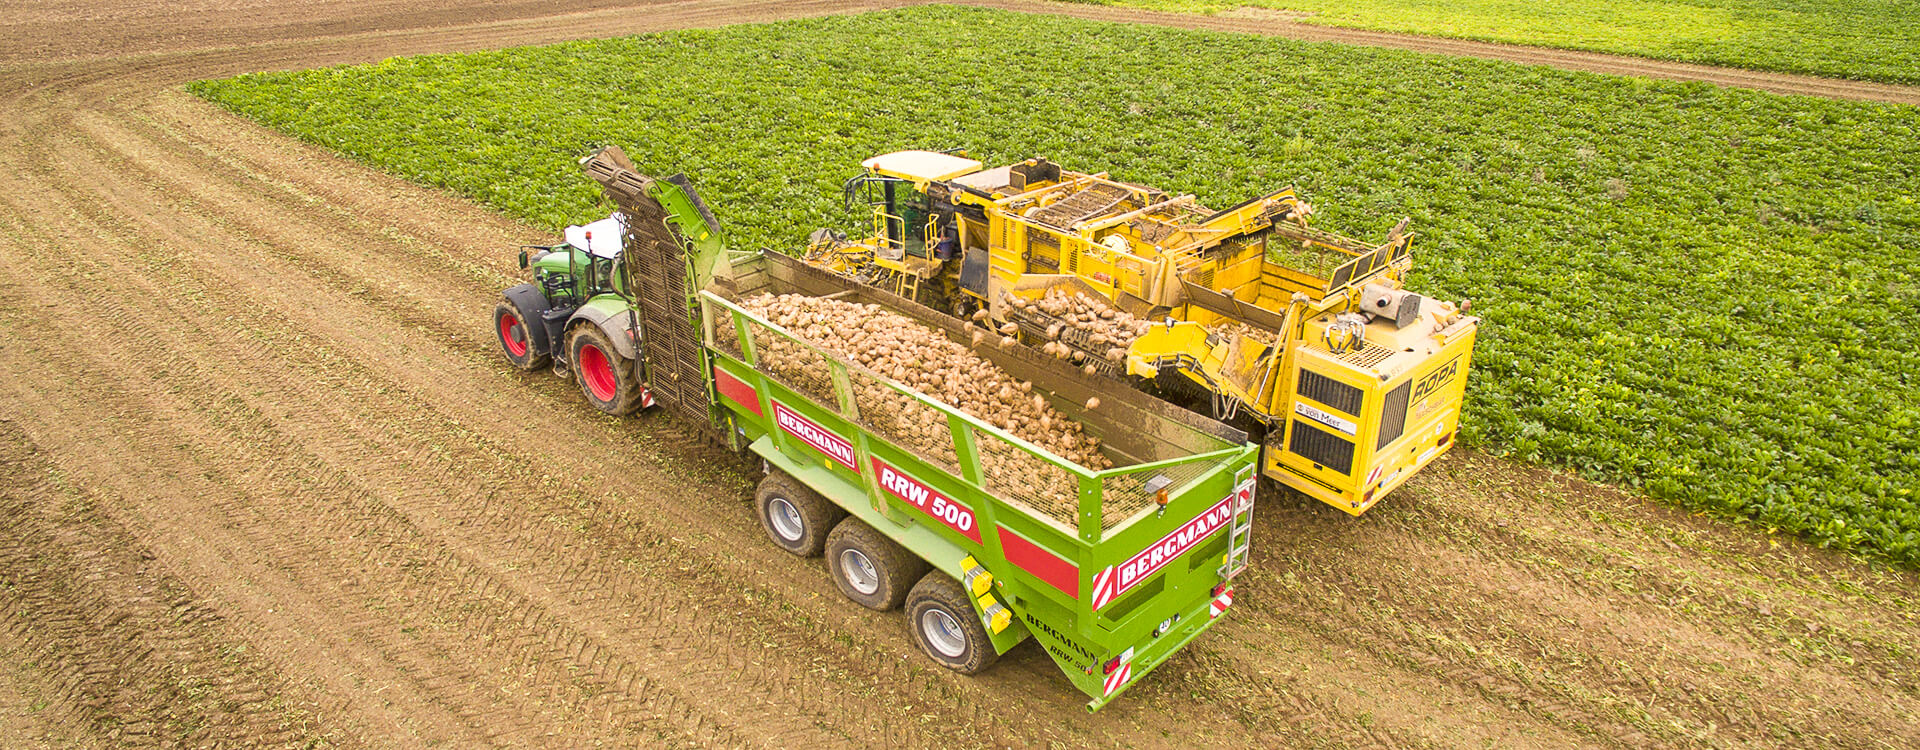 Bergmann sugar beet chaser with ropa washer harvester